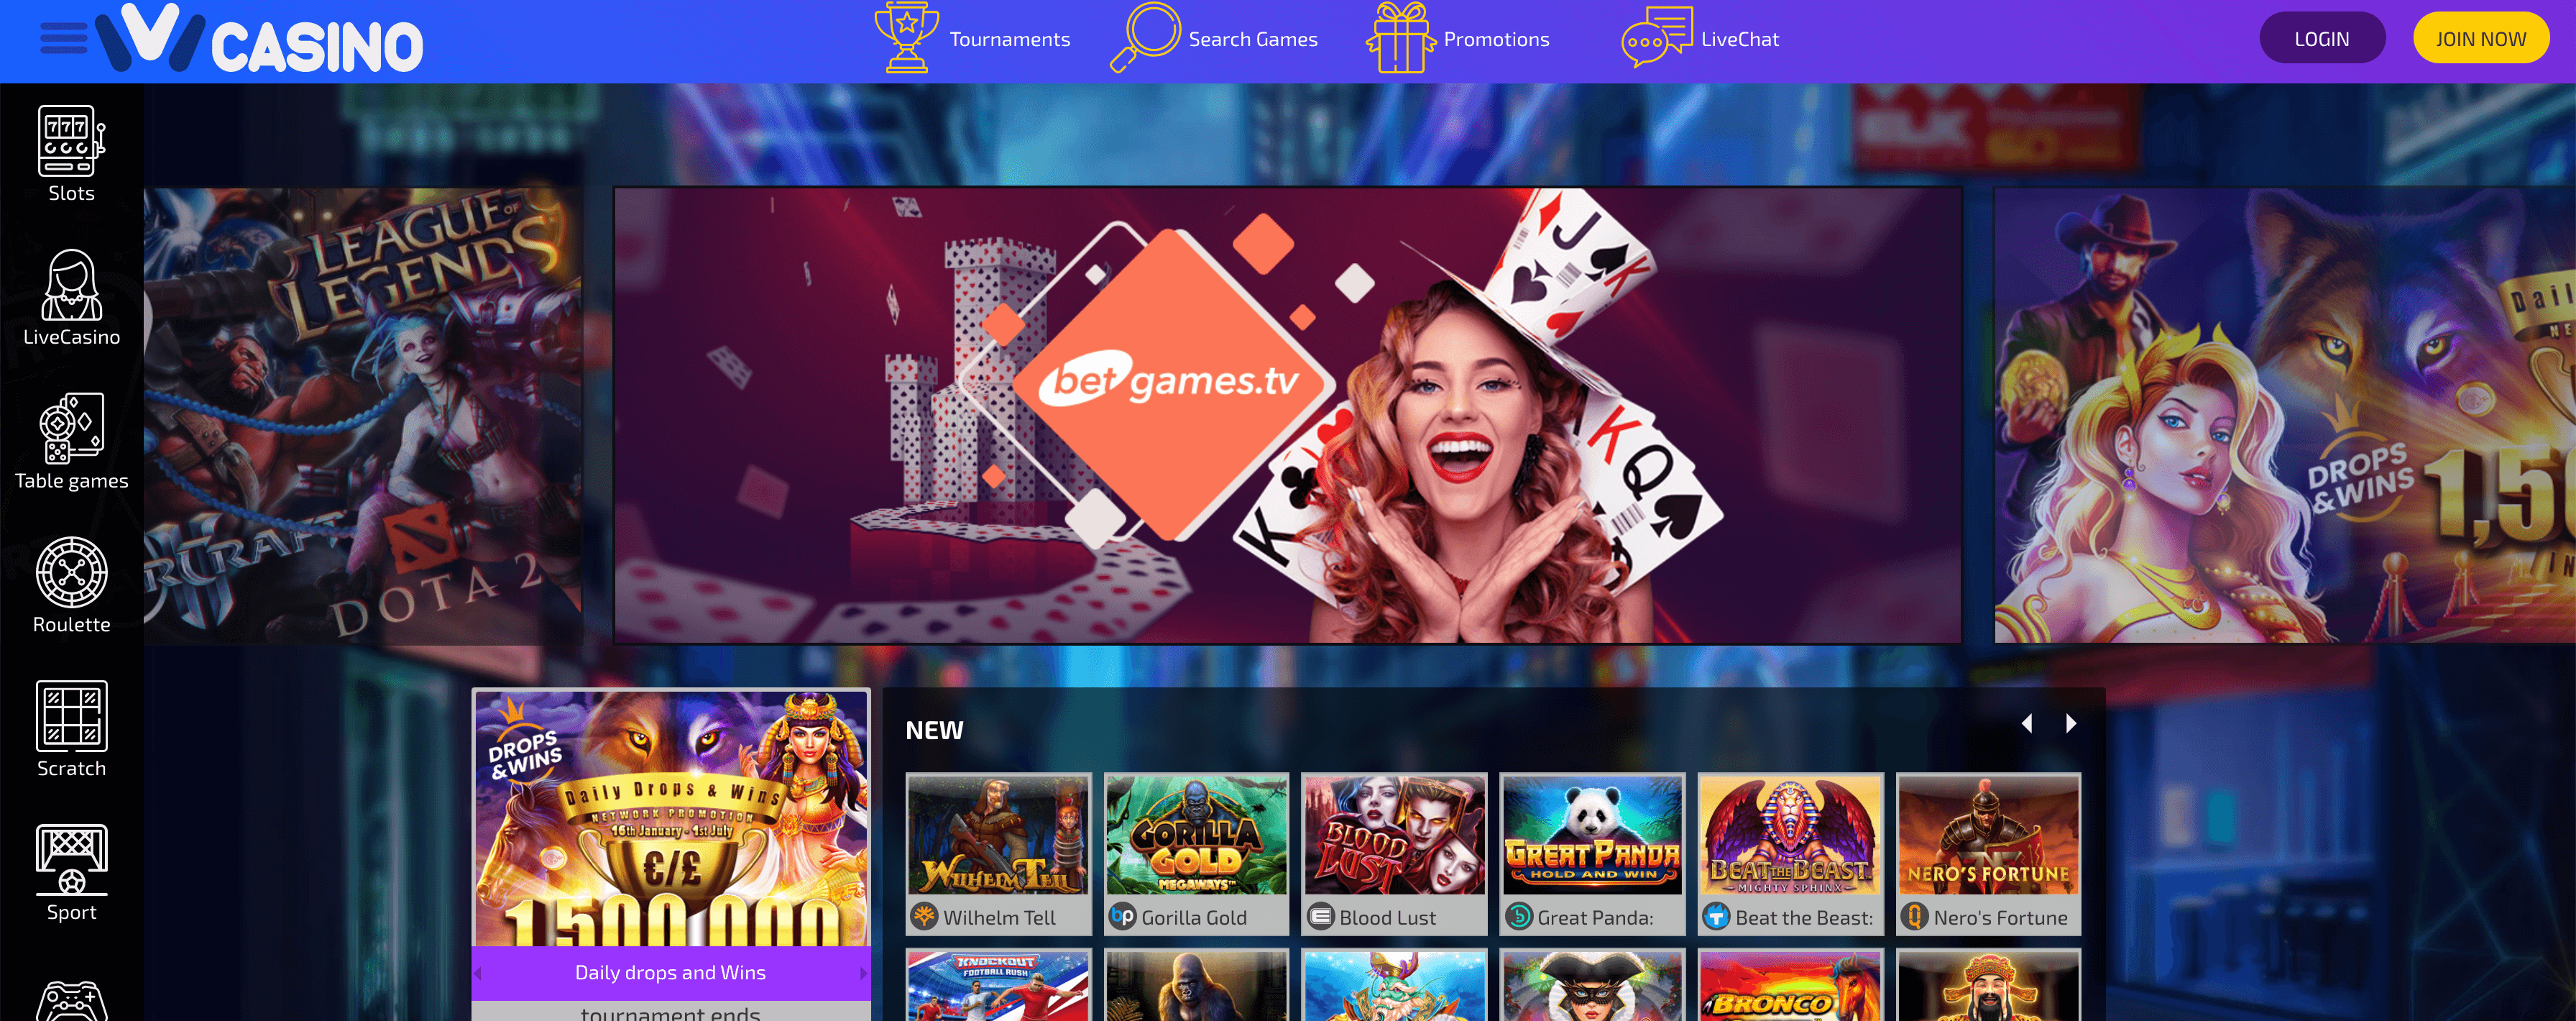 Ivi Casino Homepage